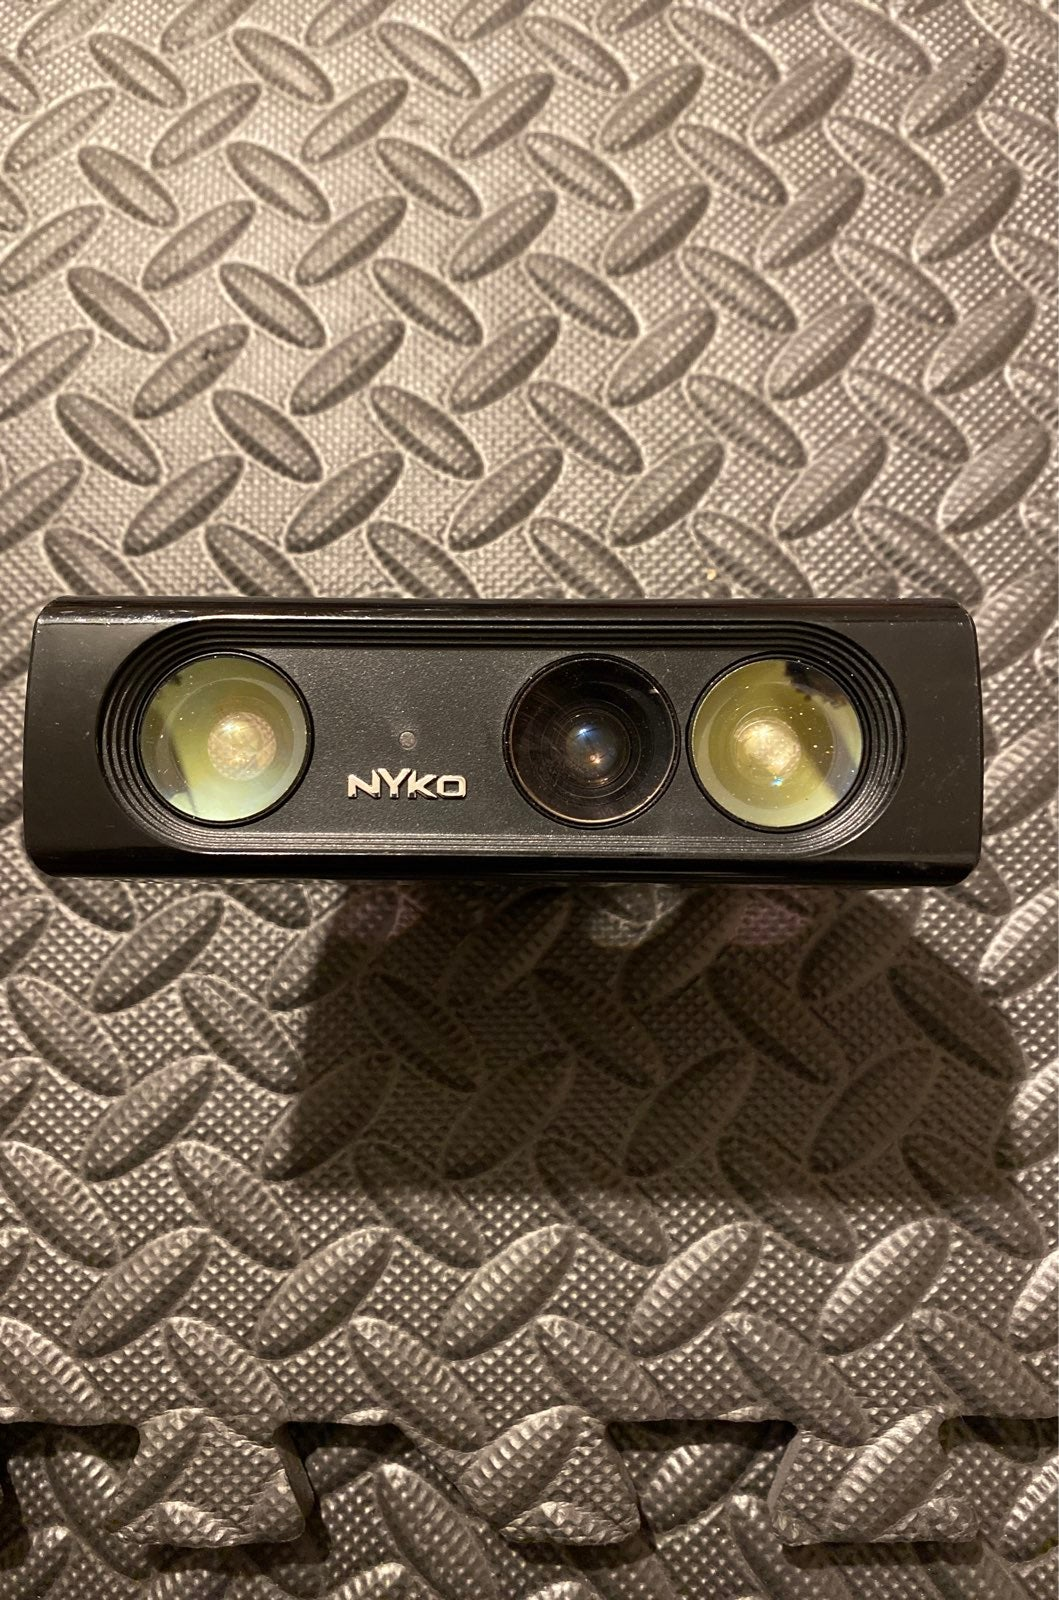 Nyko Zoom Adapter for Xbox 360 Kinect